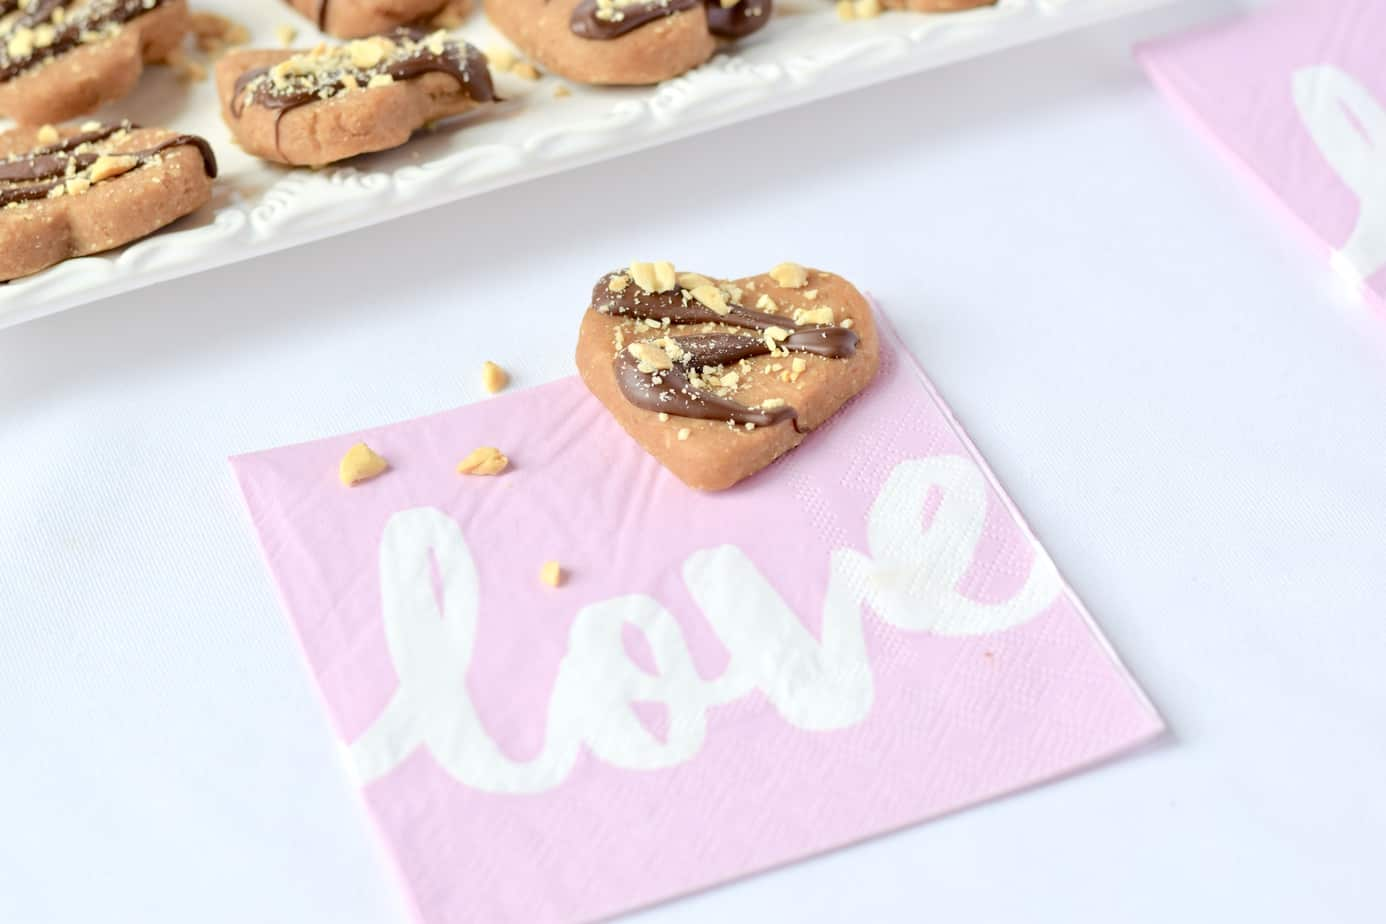 Vegan peanut butter and peanut heart-shaped dessert on Love napkin.